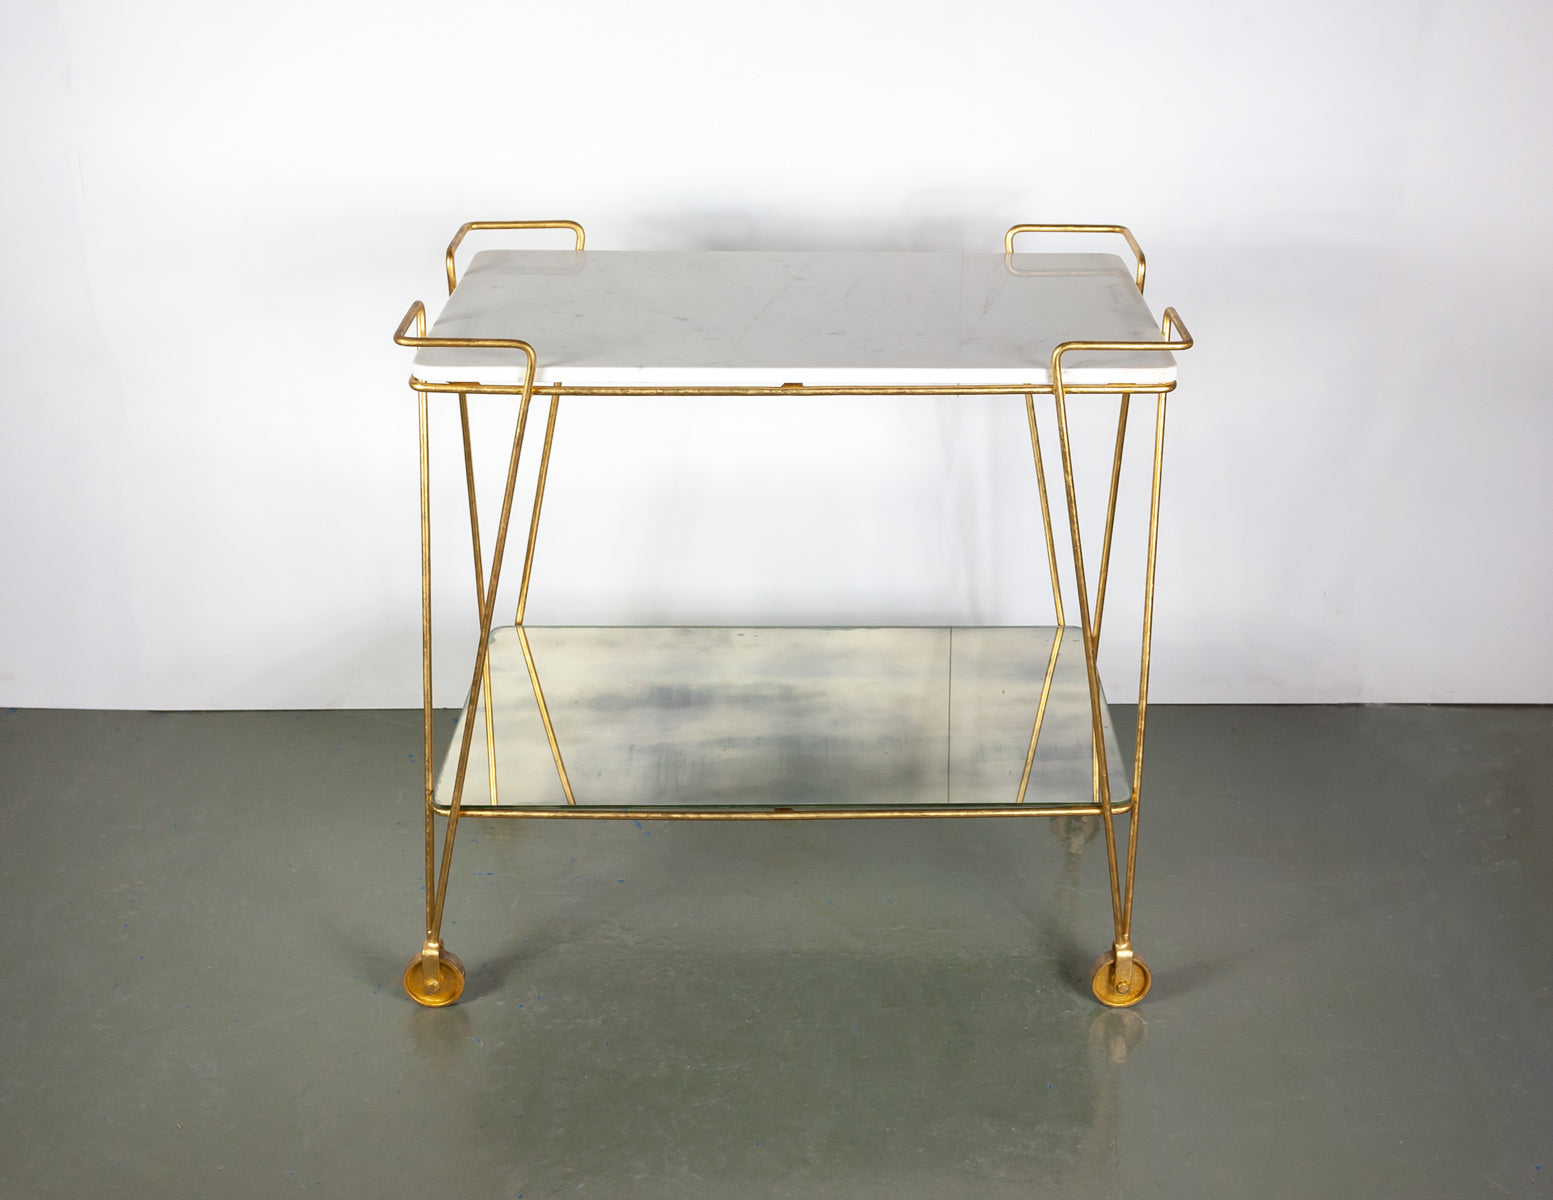 Oliver Bonas Luxe Drinks Trolley